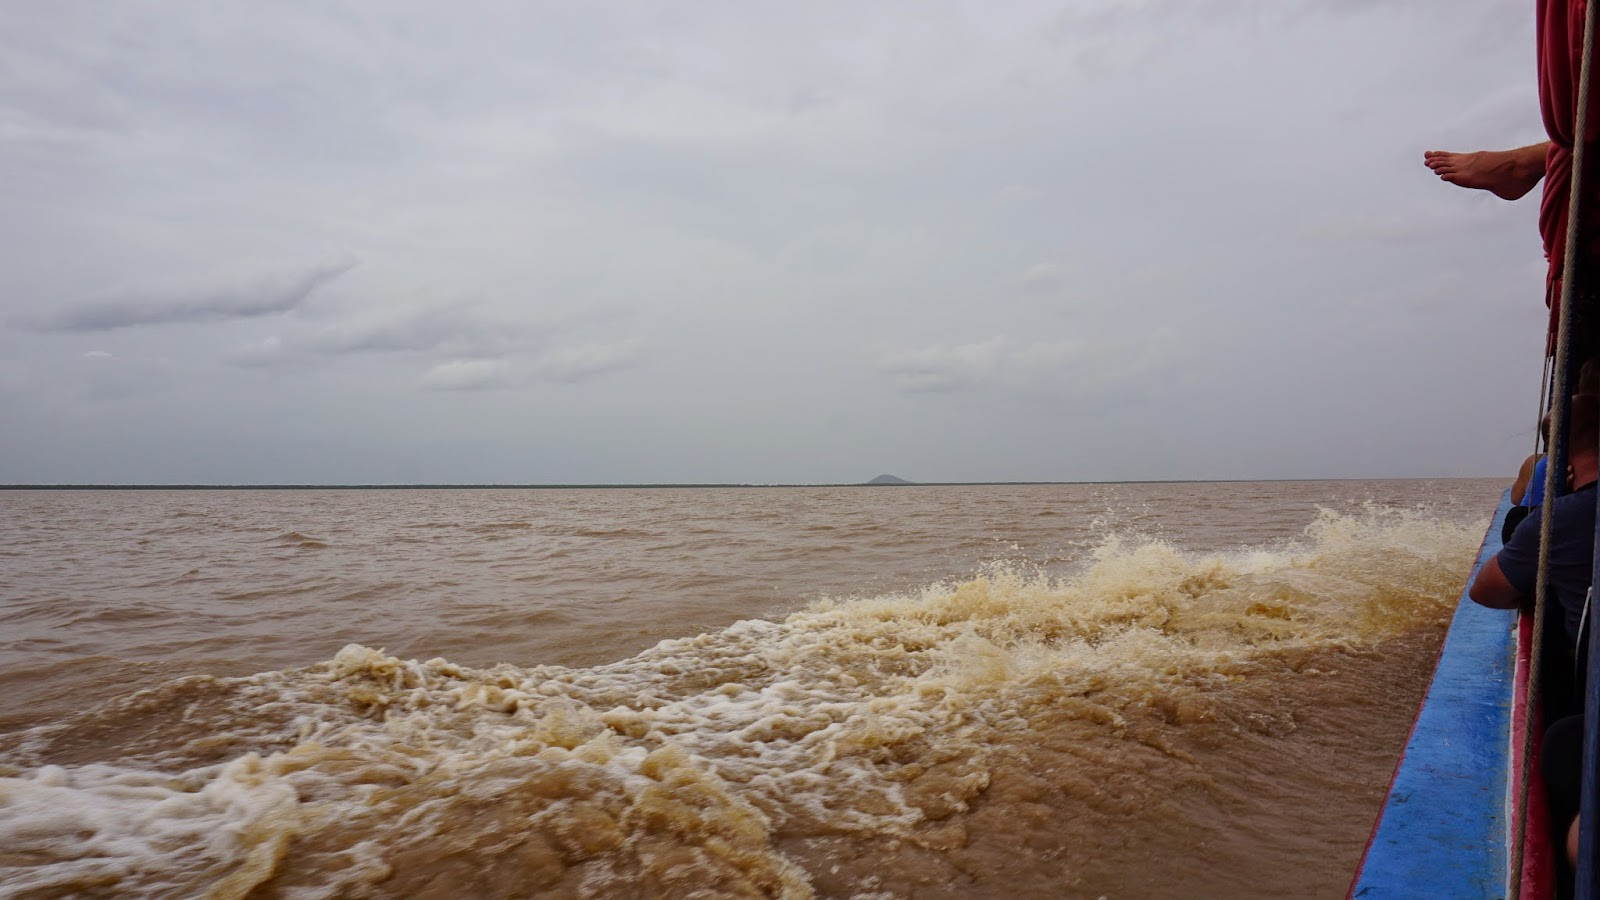 Tonle Sap, the largest freshwater lake in Southeast Asia